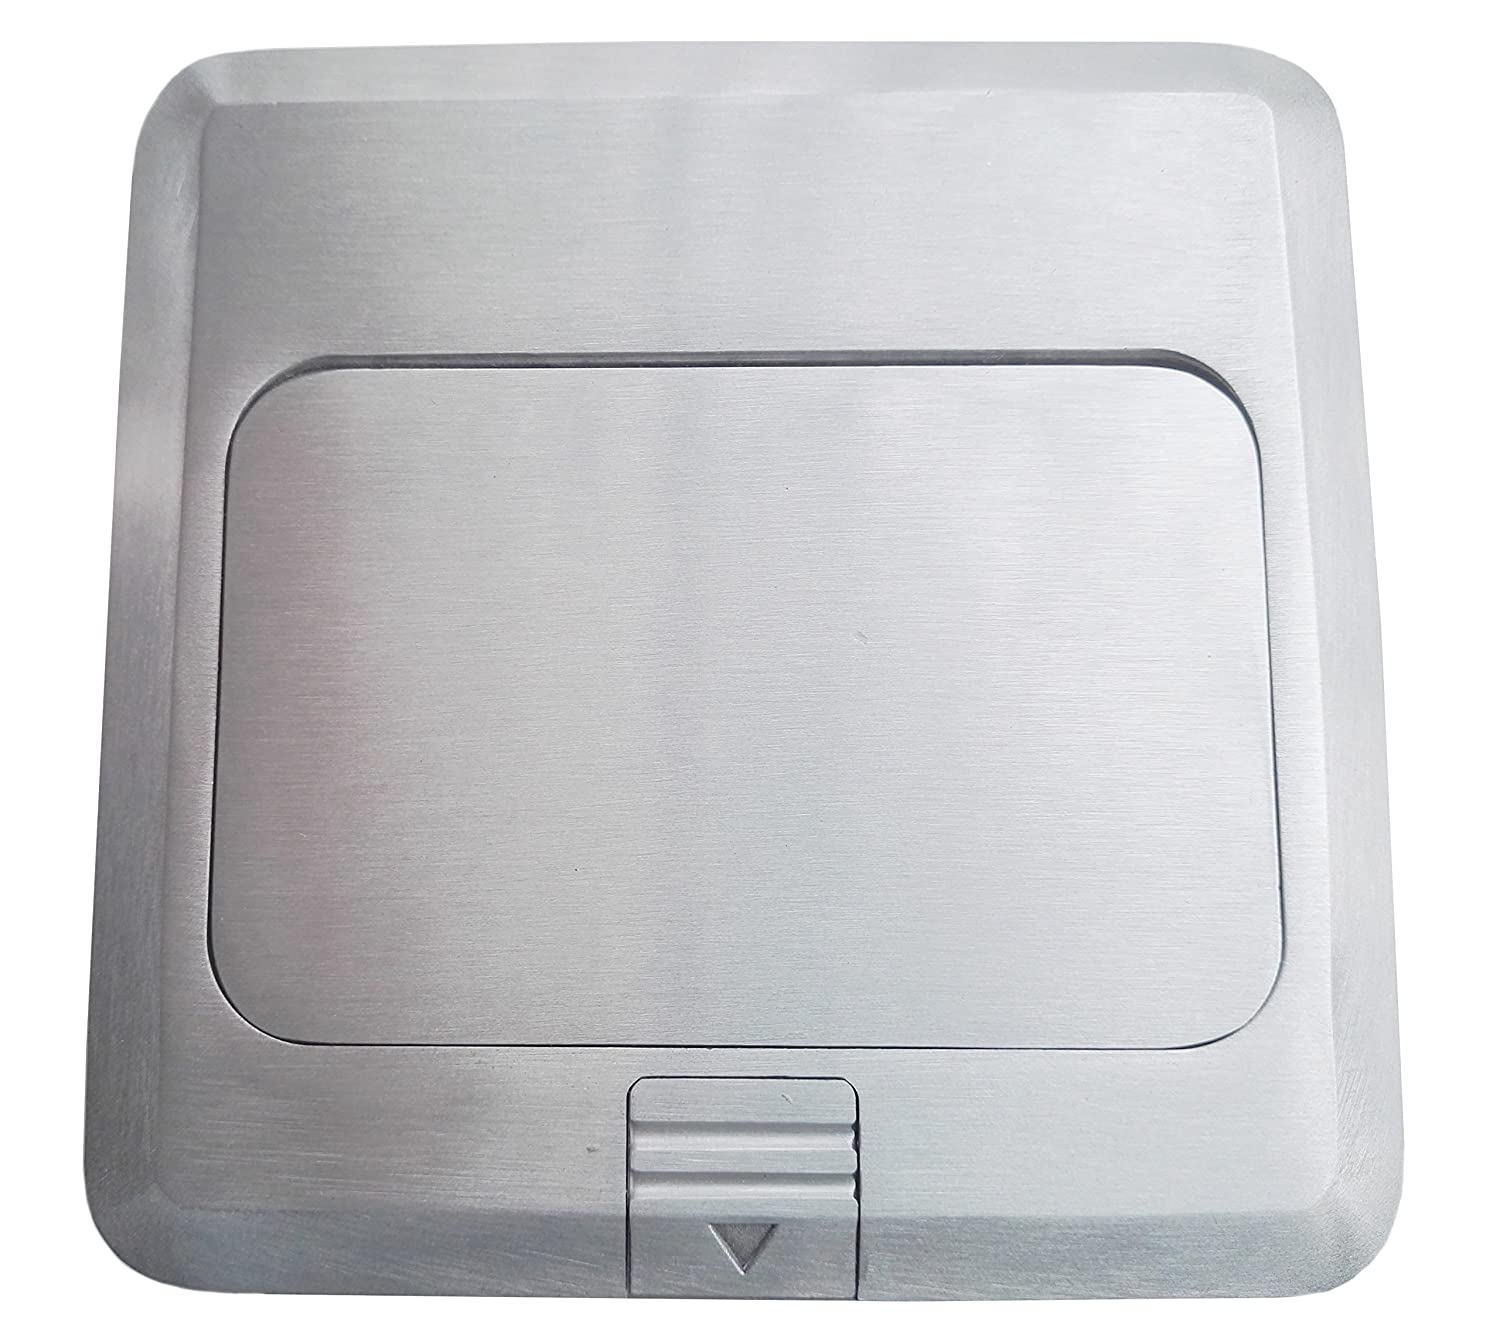 Brushed-Stainless Finish Pop Up Floor Box Countertop Box w//20A GFI Receptacle Electric Outlet